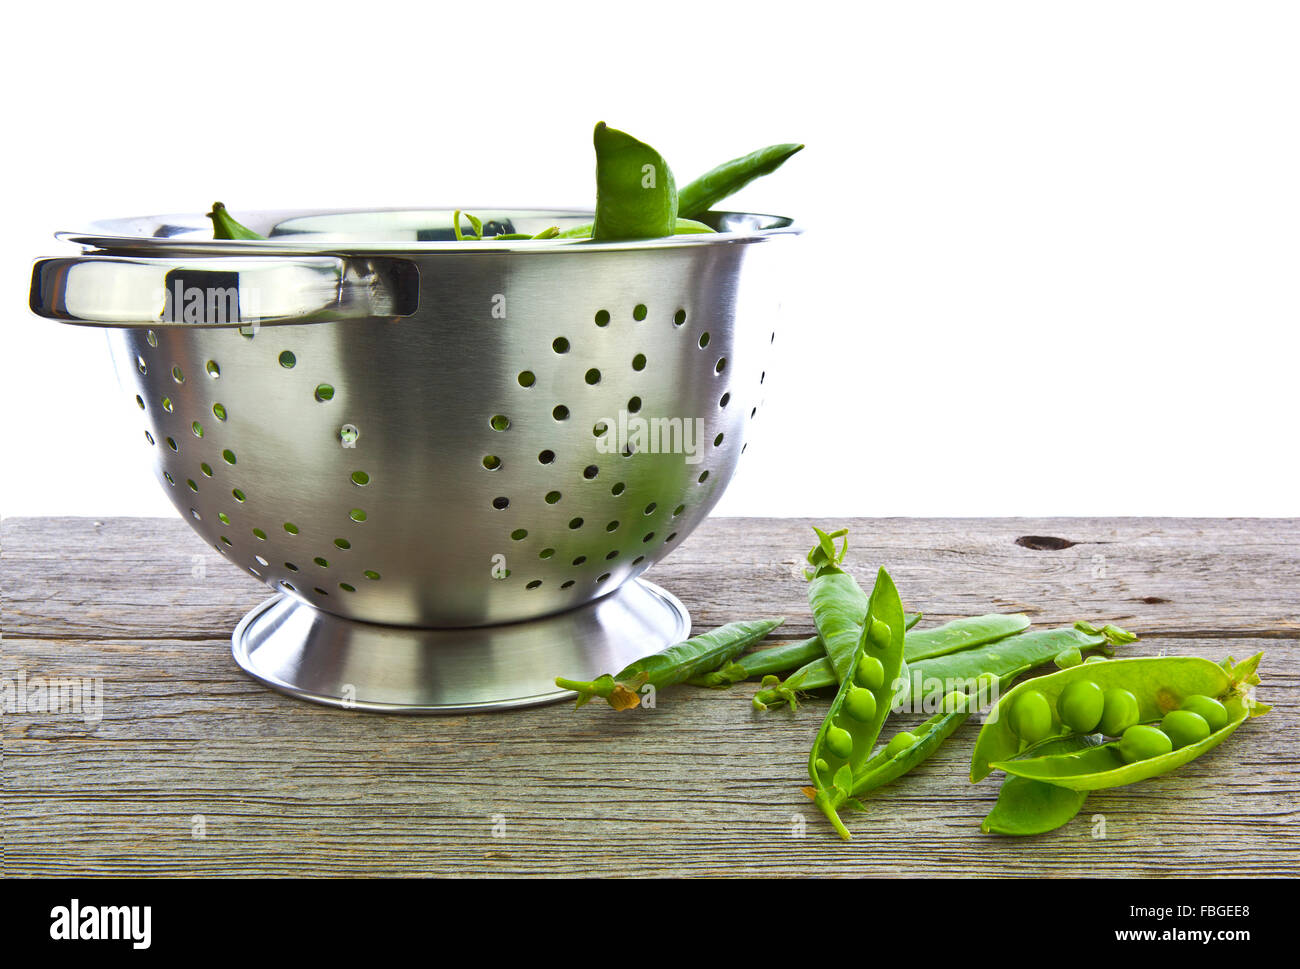 Freshly picked home grown organic peas in a colander - Stock Image